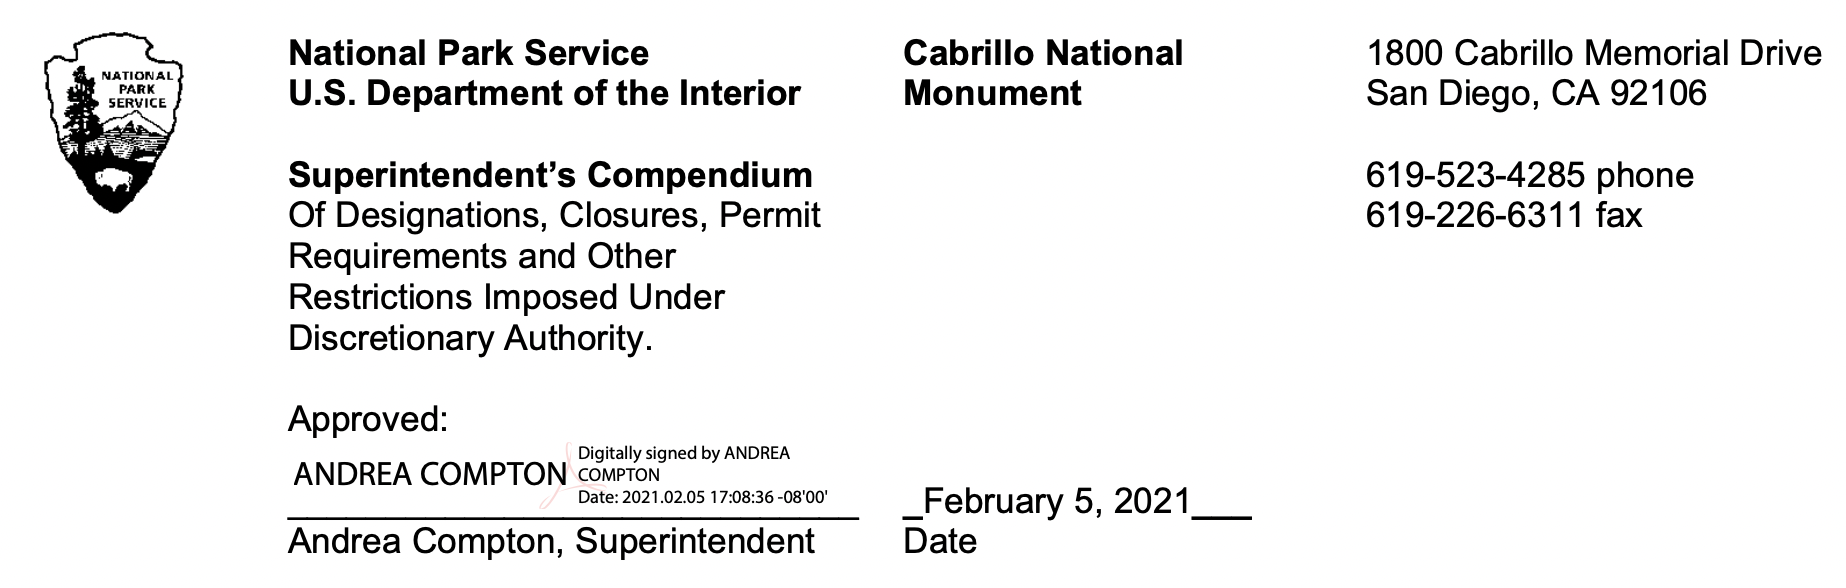 Letterhead with Superintendent Andrea Compton's signature, dated February 2021 approving the document for Cabrillo National Monument